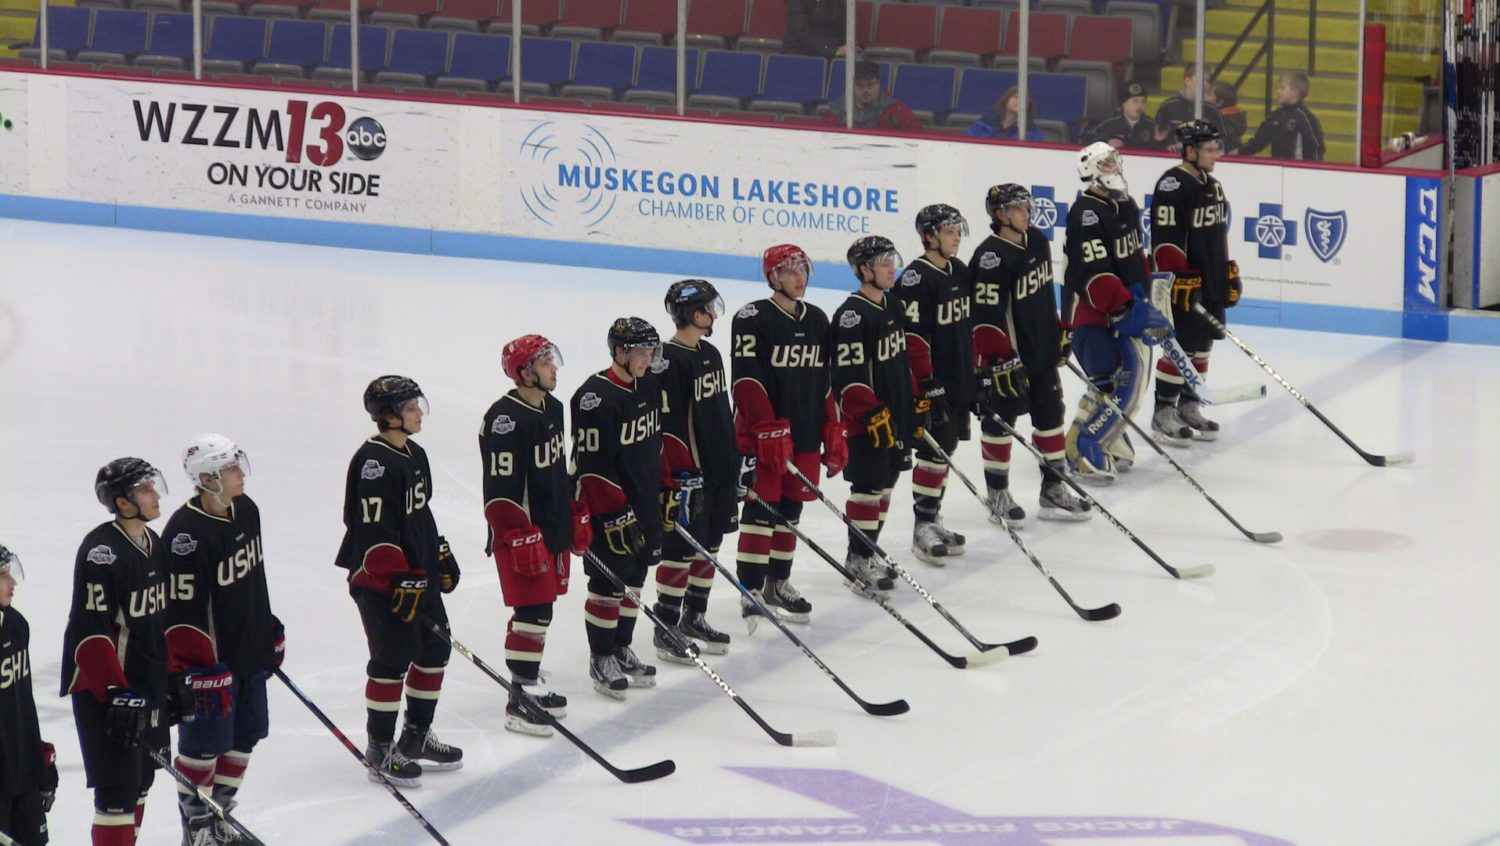 Highlights from the USHL / NHL Top Prospects game [VIDEO]